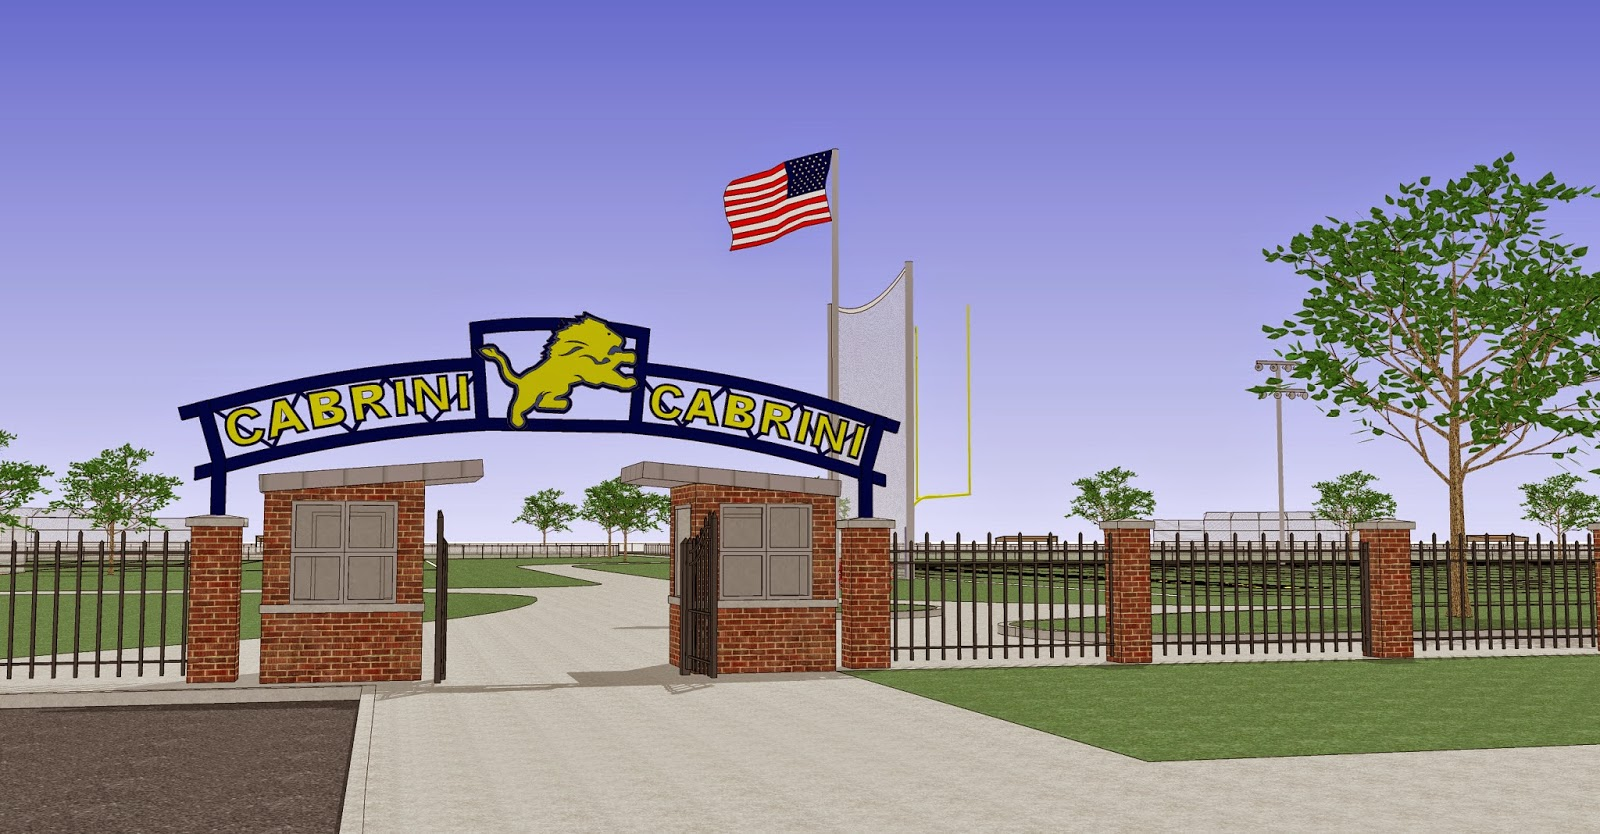 Cabrini high school campus plan and building addition for New building design plan